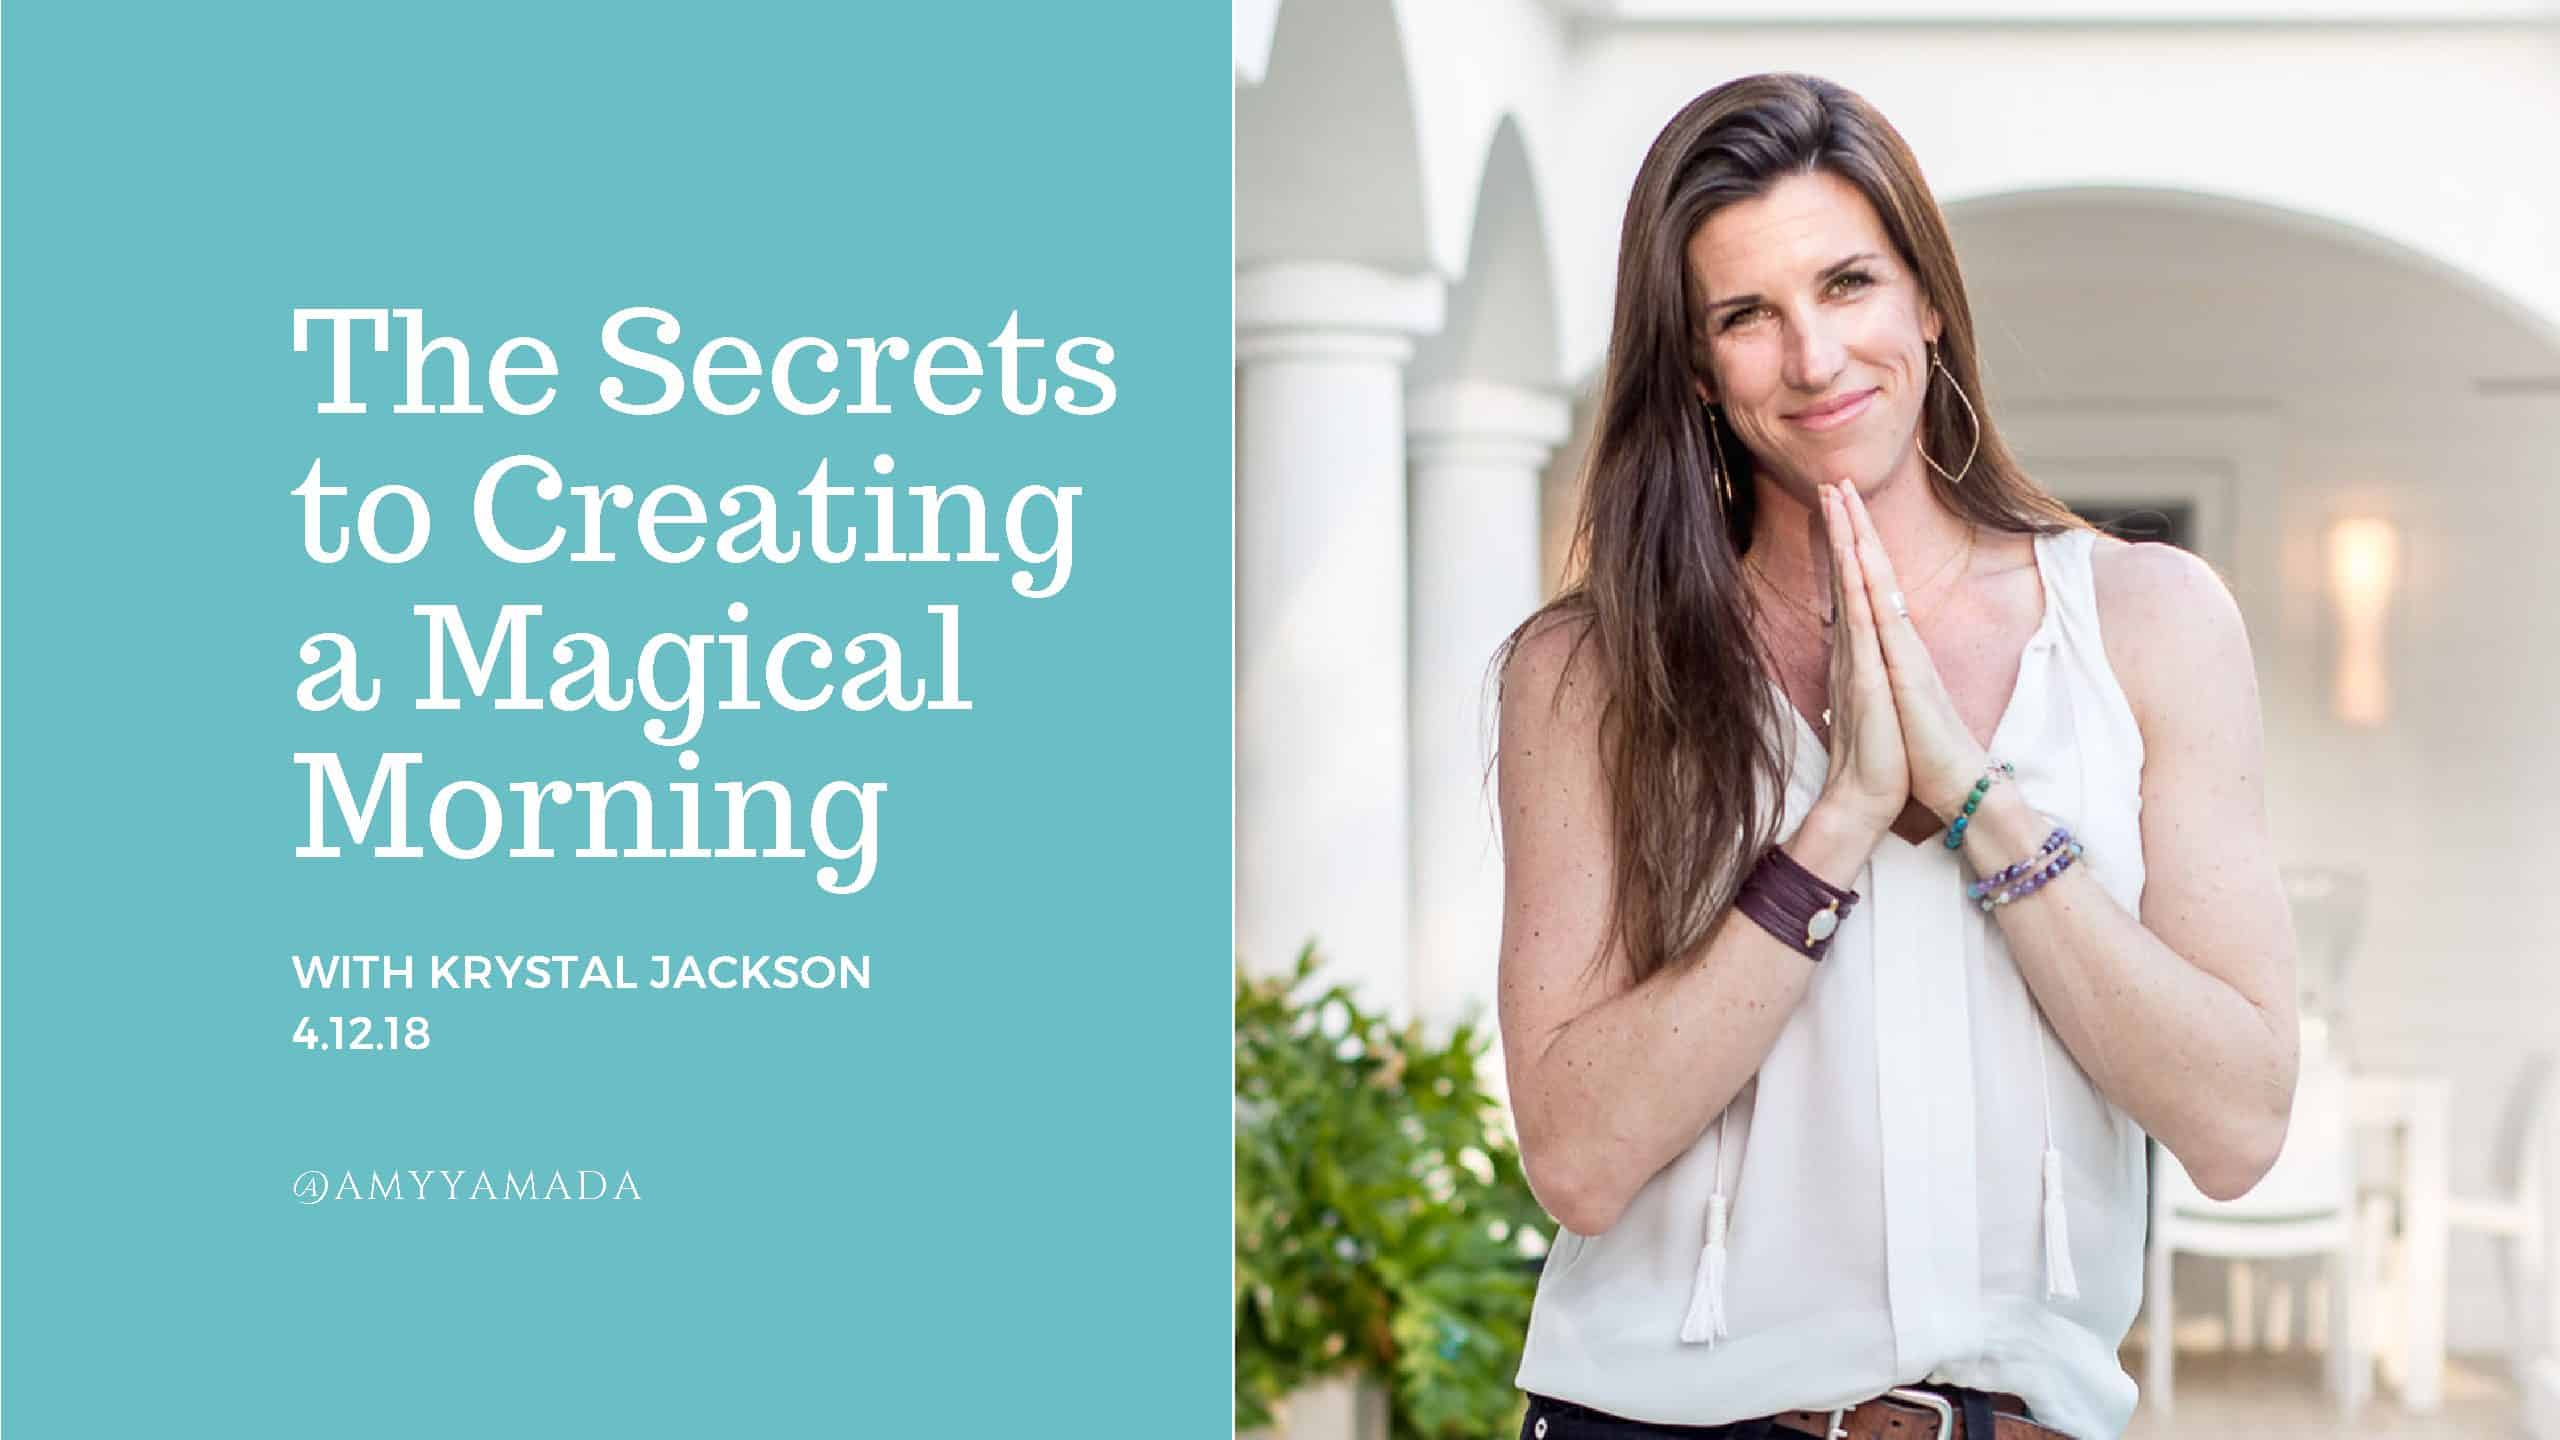 The Secrets to Creating a Magical Morning